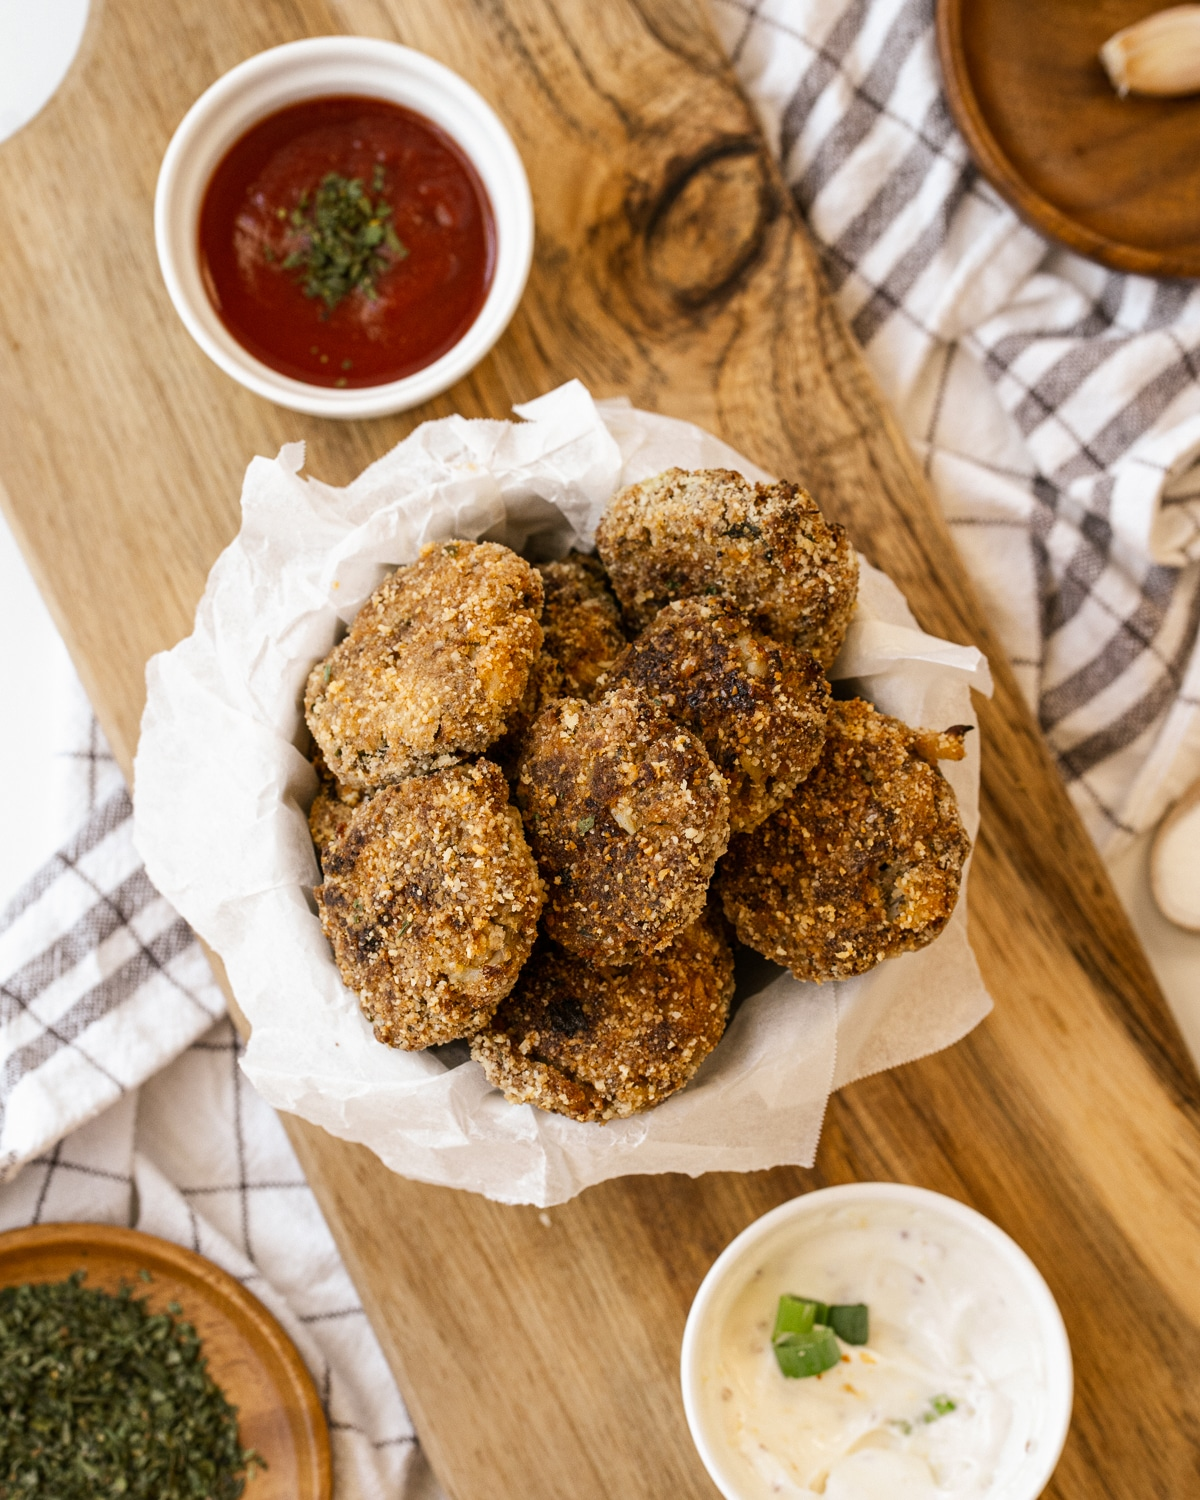 Simple to make, loaded with veggies and super healthy, these delicious Cauliflower Tots will be your family's favorite!